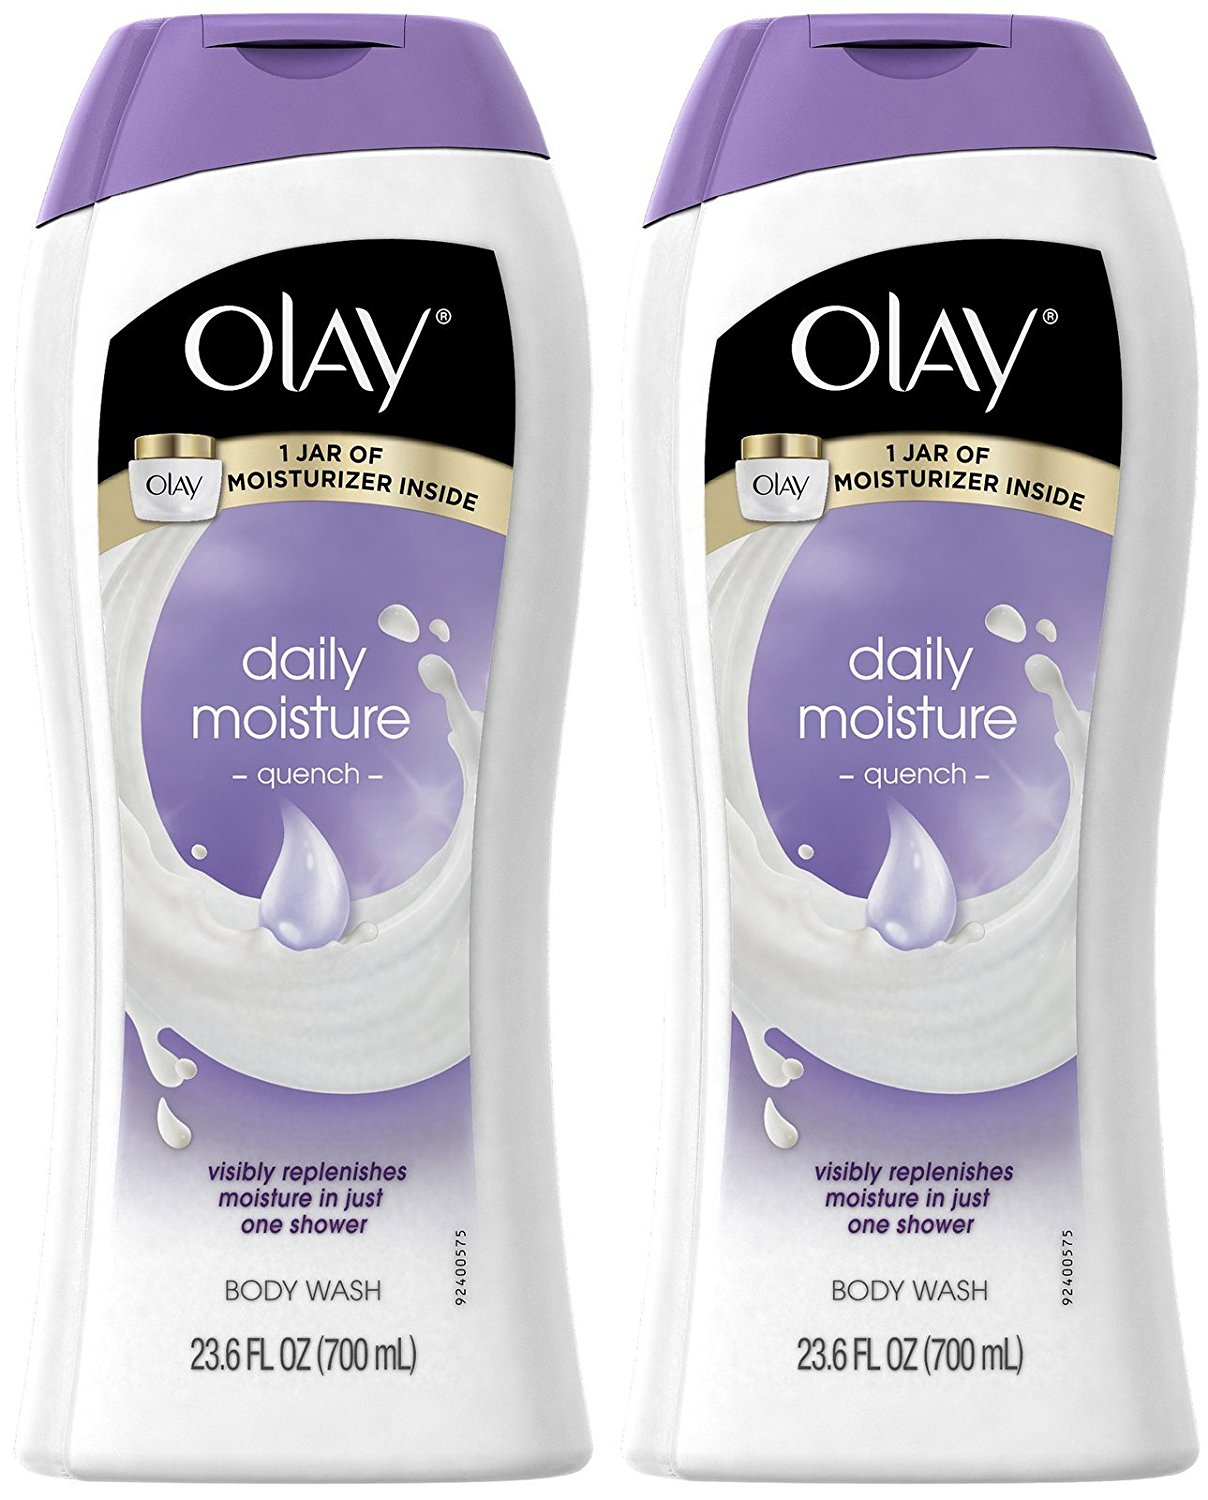 Olay Quench Olay Daily Moisture Quench Moisturizing Body Wash - 23.6 oz - 2 pk